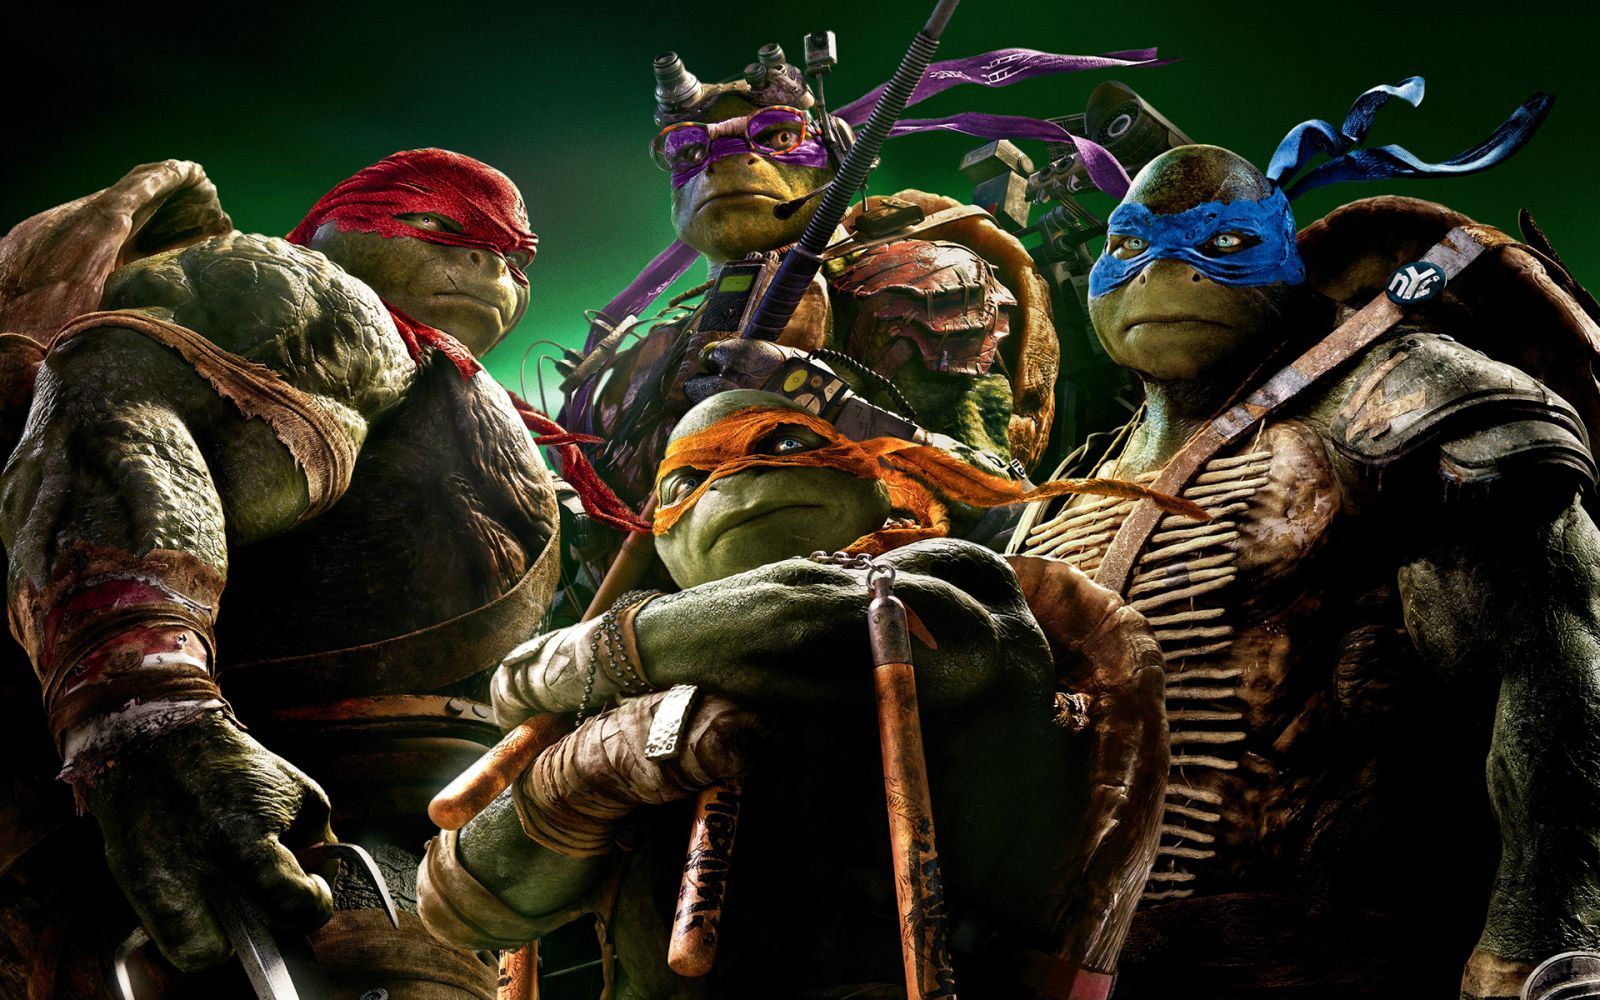 Teenage Mutant Ninja Turtles circa 2014